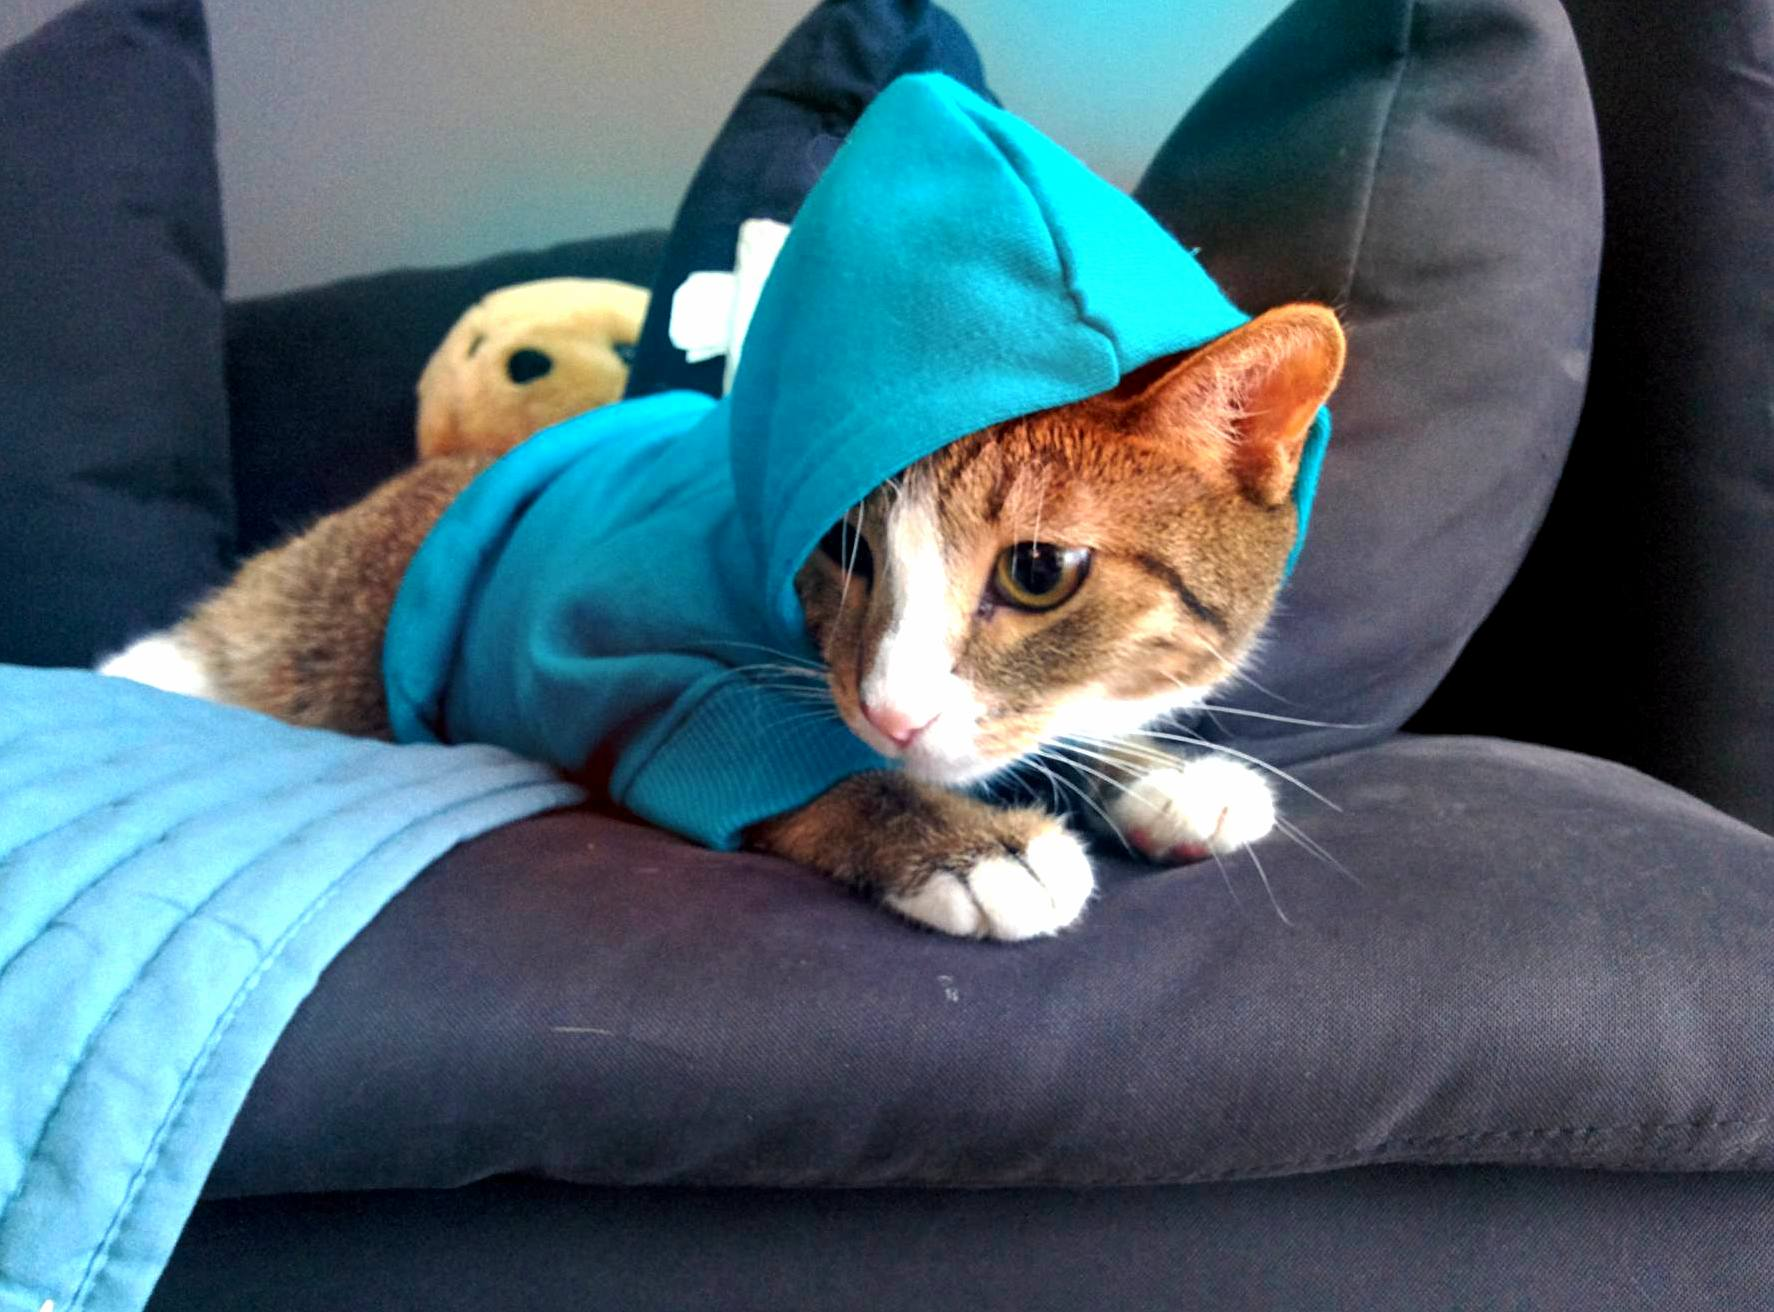 Pixels not a fan of the hood life